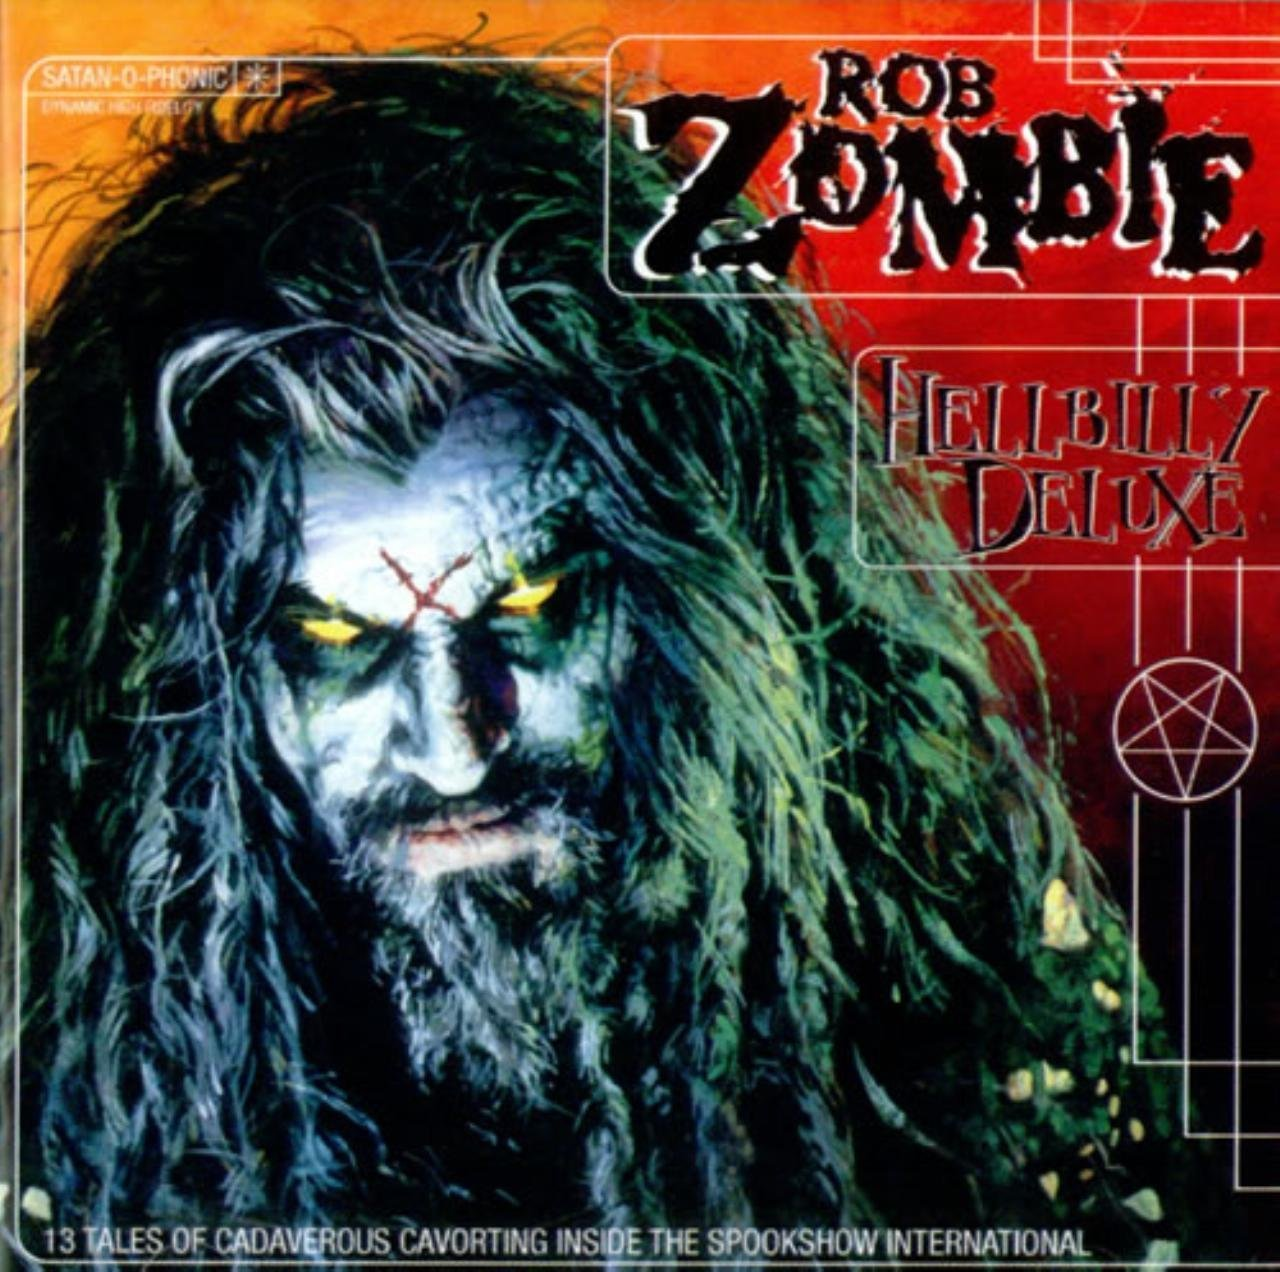 CD : Rob Zombie - Hellbilly Deluxe [Explicit Content]